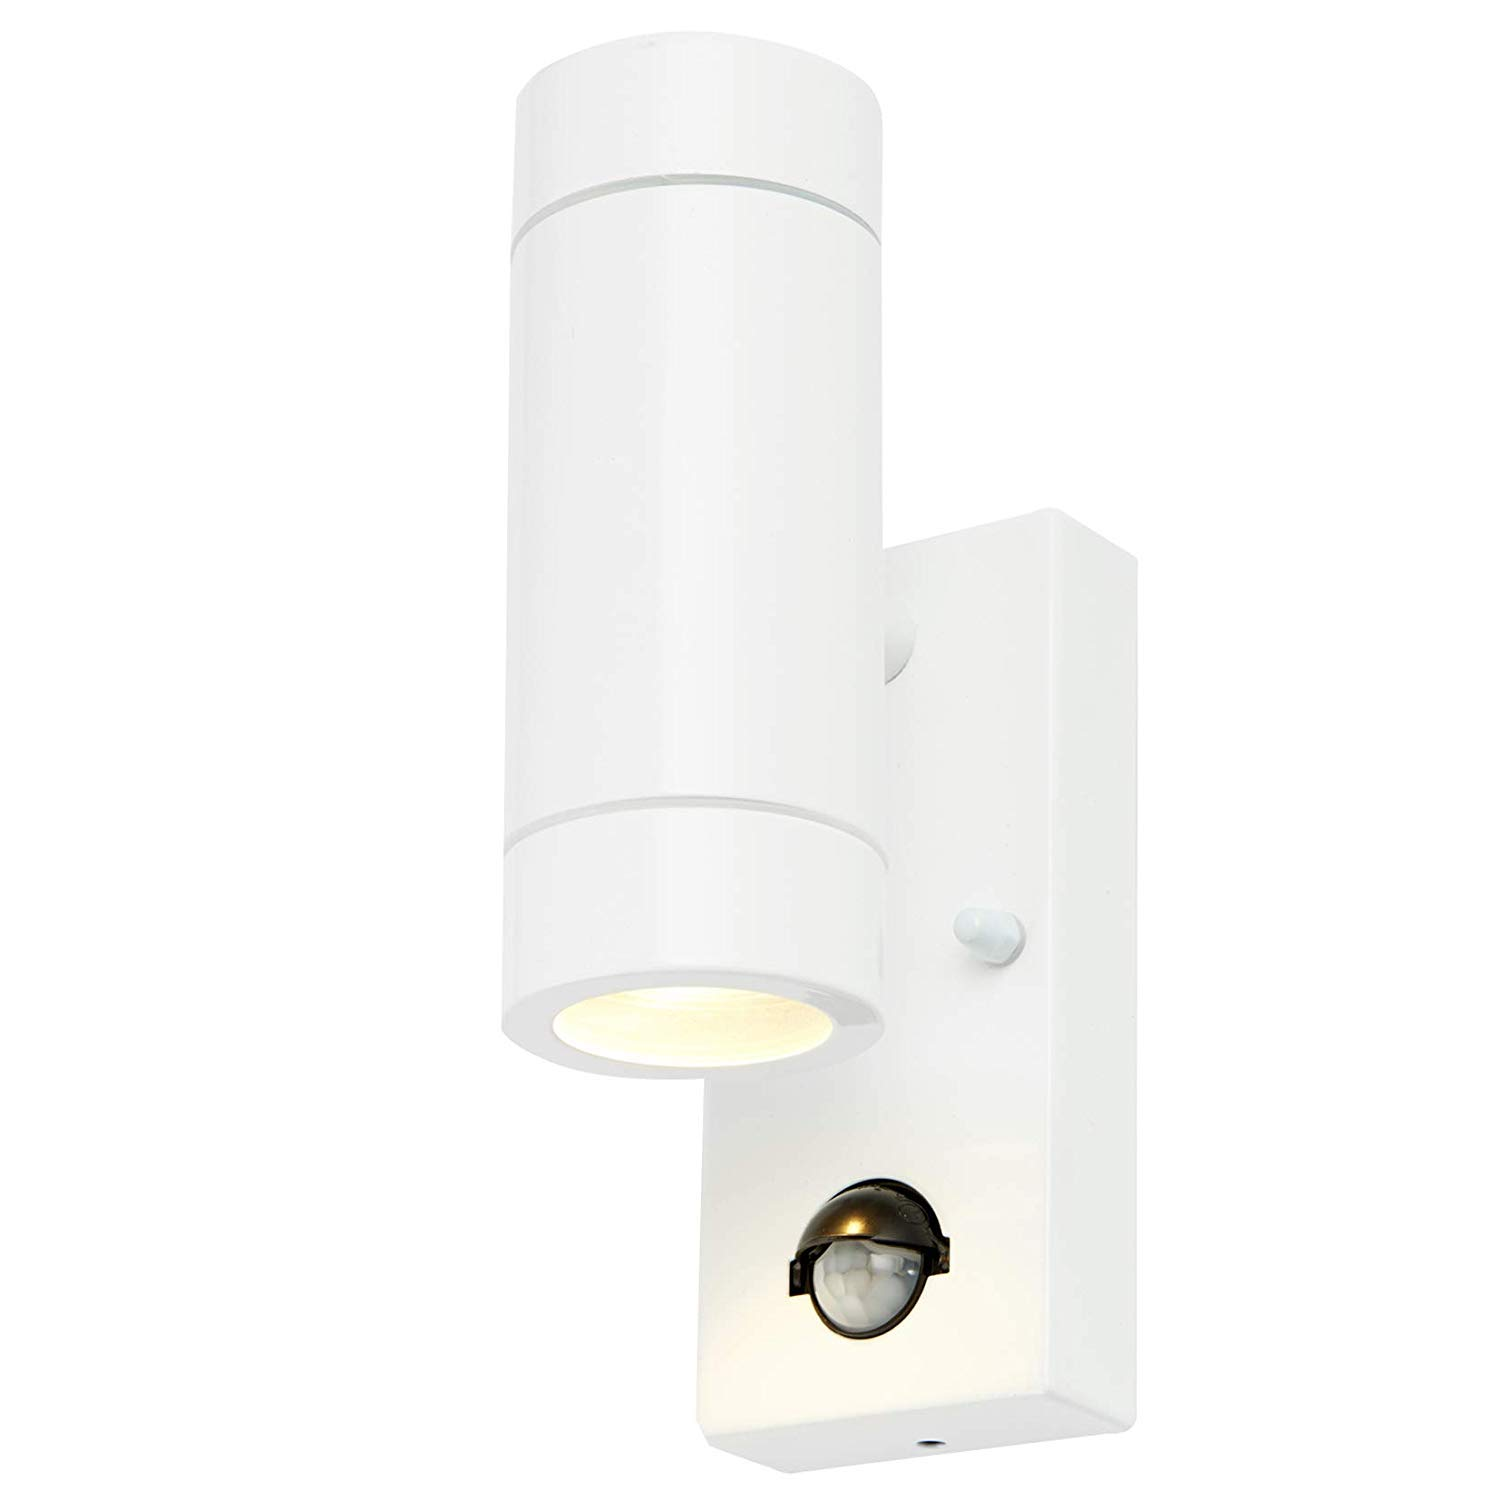 Modern Brushed Stainless Steel External Up//Down Outdoor Security PIR Motion Detector GU10 Wall Light IP44 Rated